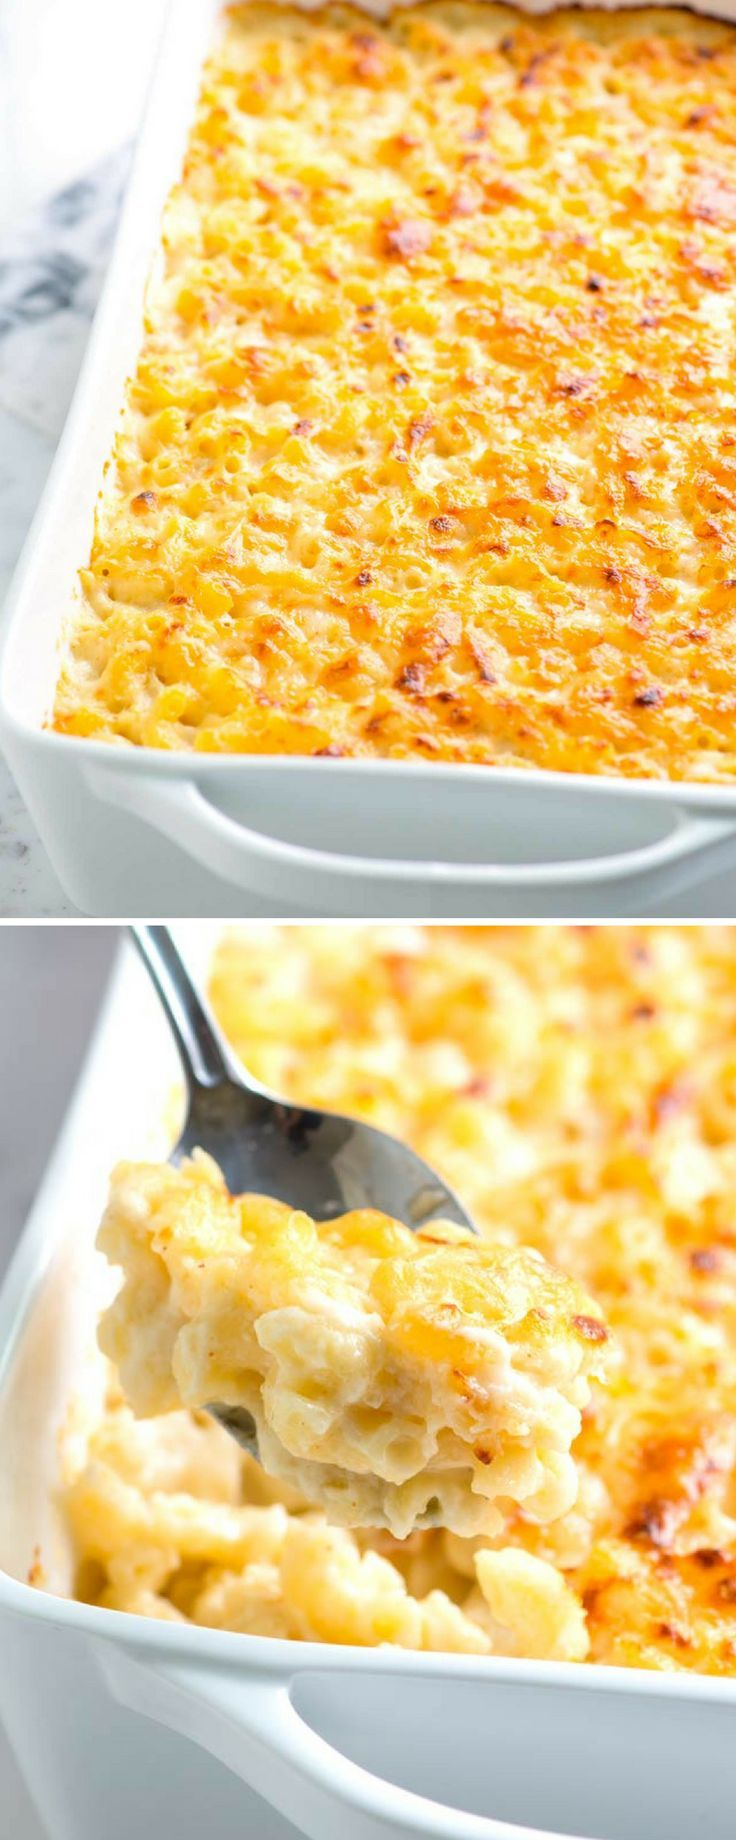 Ultra Creamy Baked Mac And Cheese Recipe Creamy Baked Mac And Cheese Recipe Best Mac N Cheese Recipe Best Macaroni And Cheese